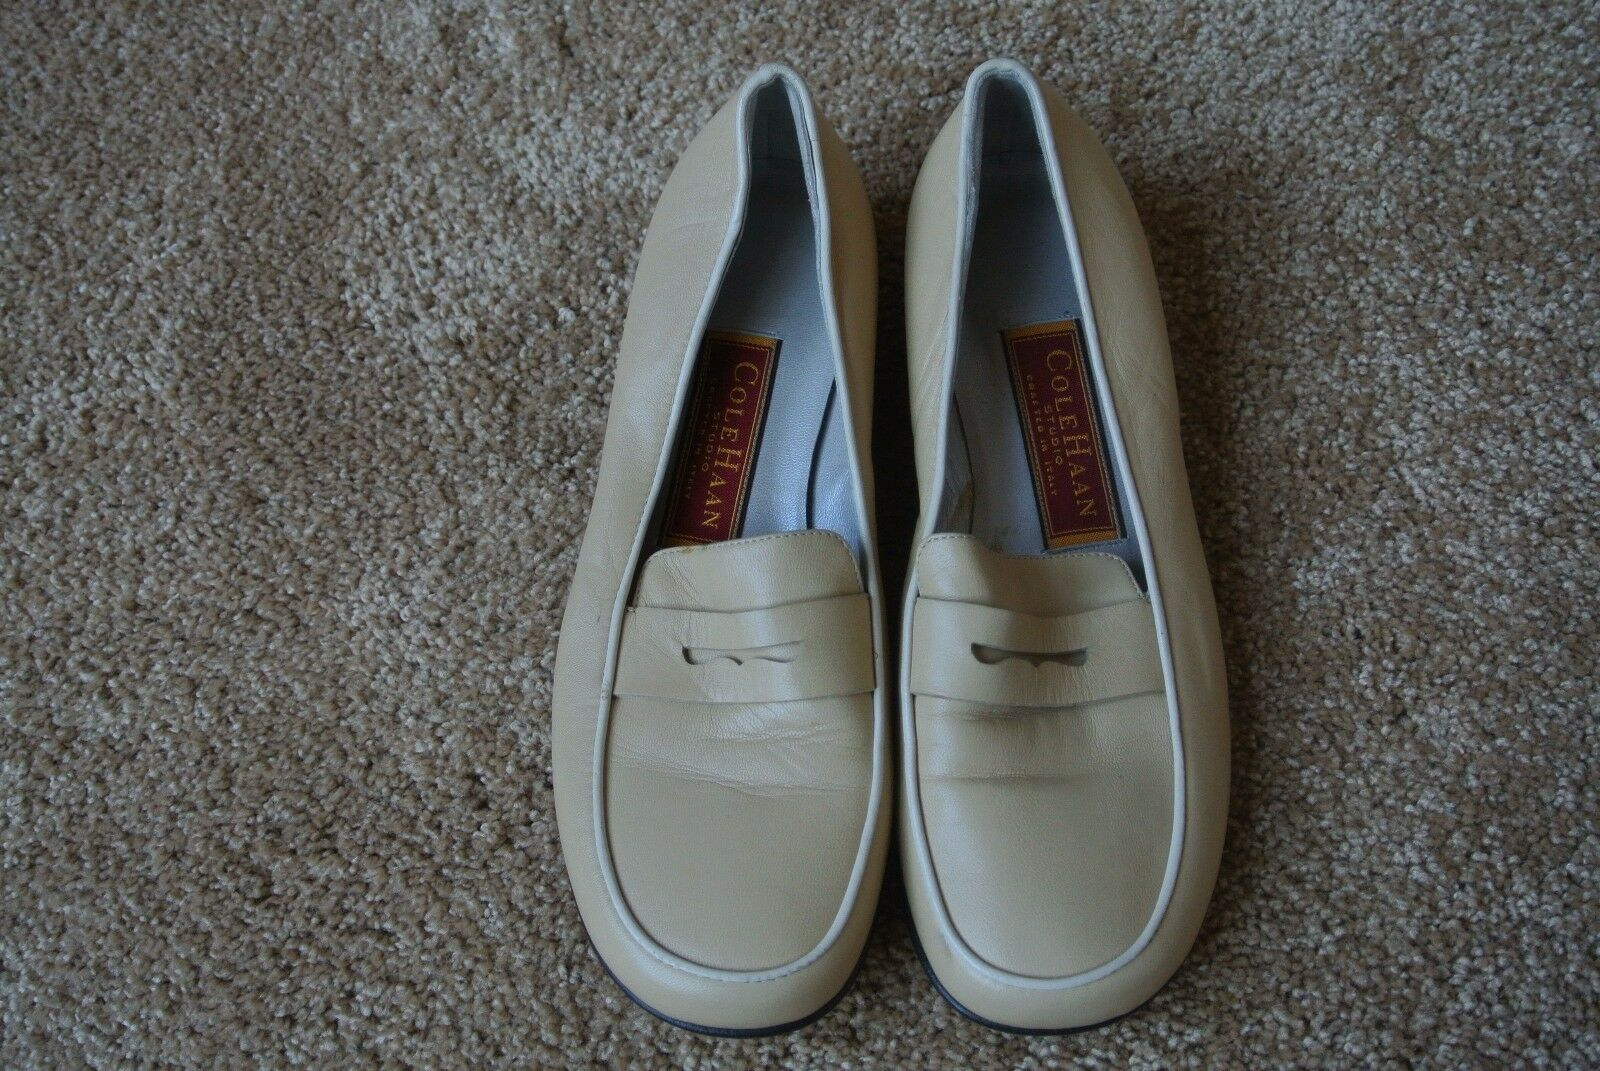 COLE HAAN ITALIAN LAMBSKIN Leather Camel Penny Loafers shoes Flats 5.5 NWOB  225